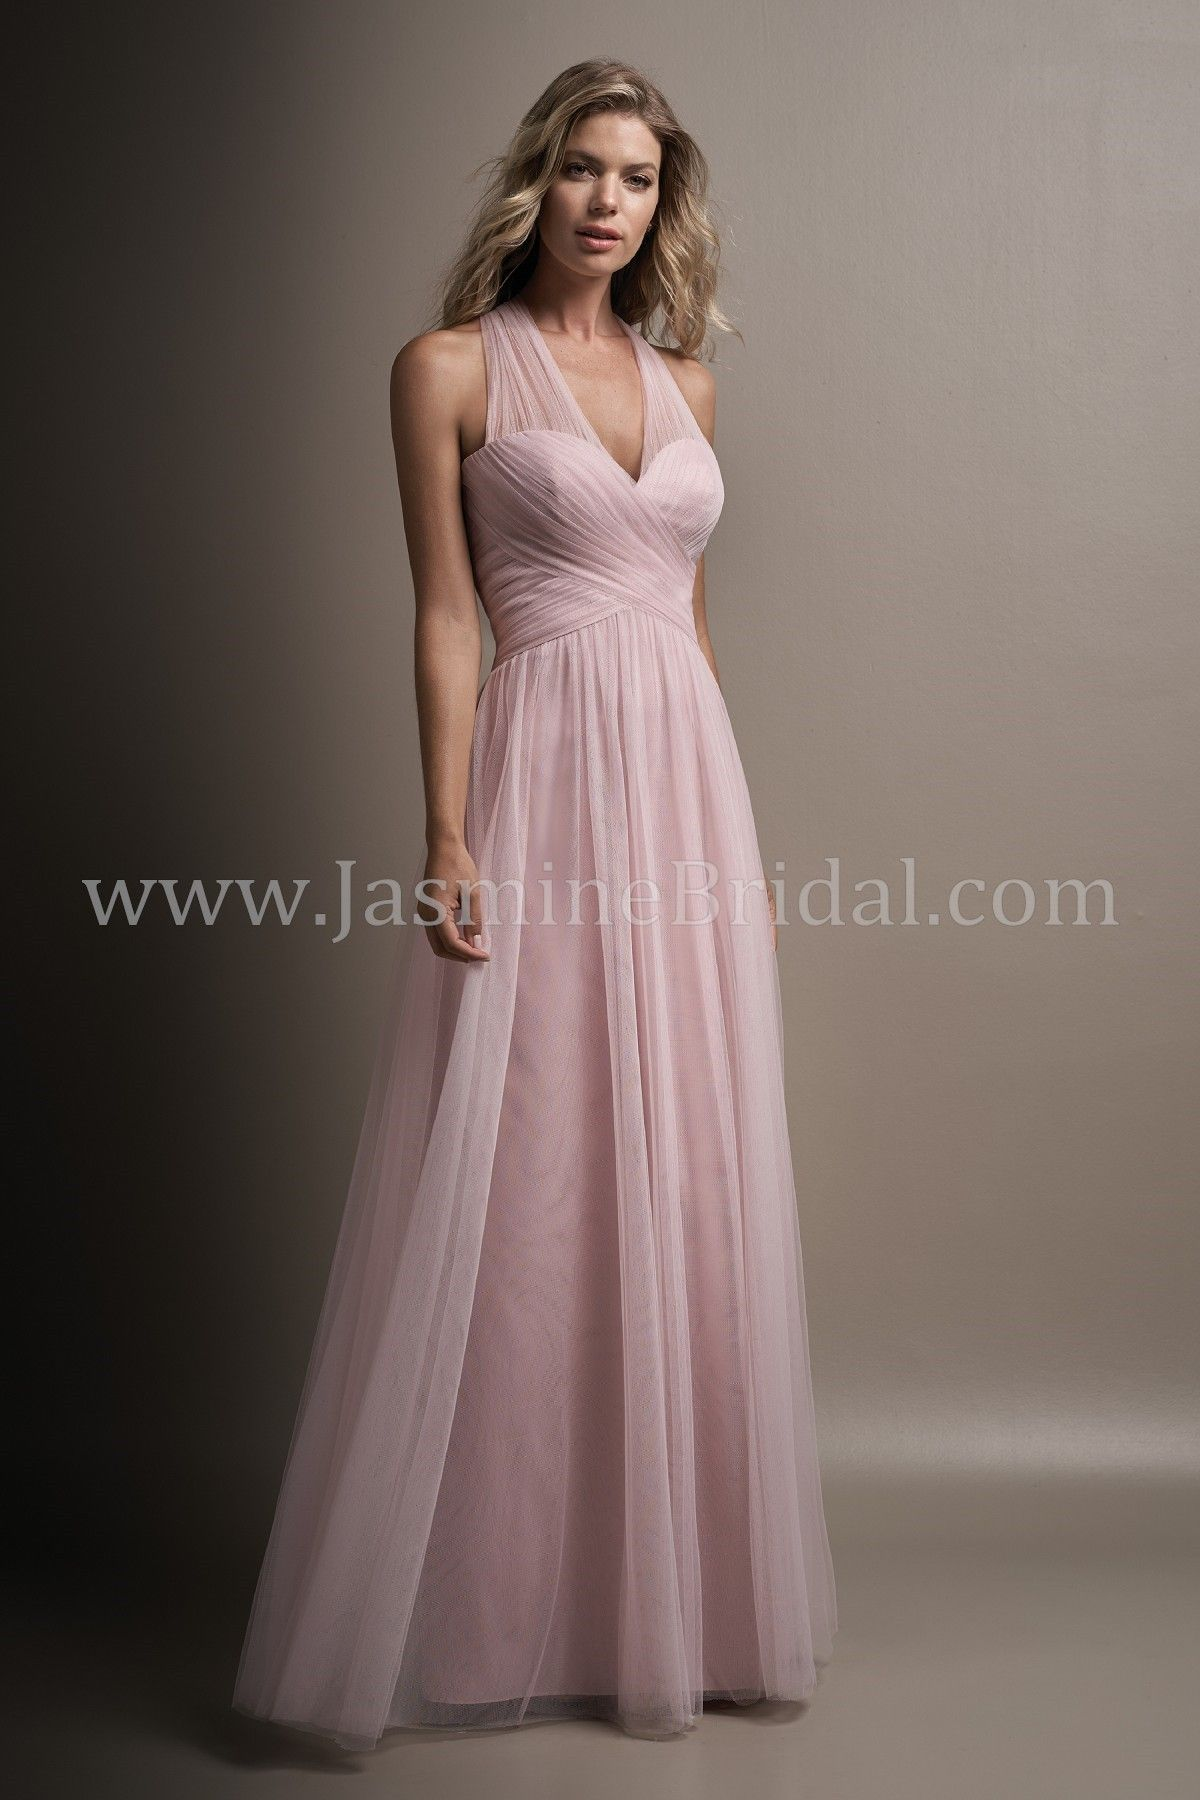 d0bf722dc05 Jasmine Bridal Belsoie Style L194004 in Misty Pink